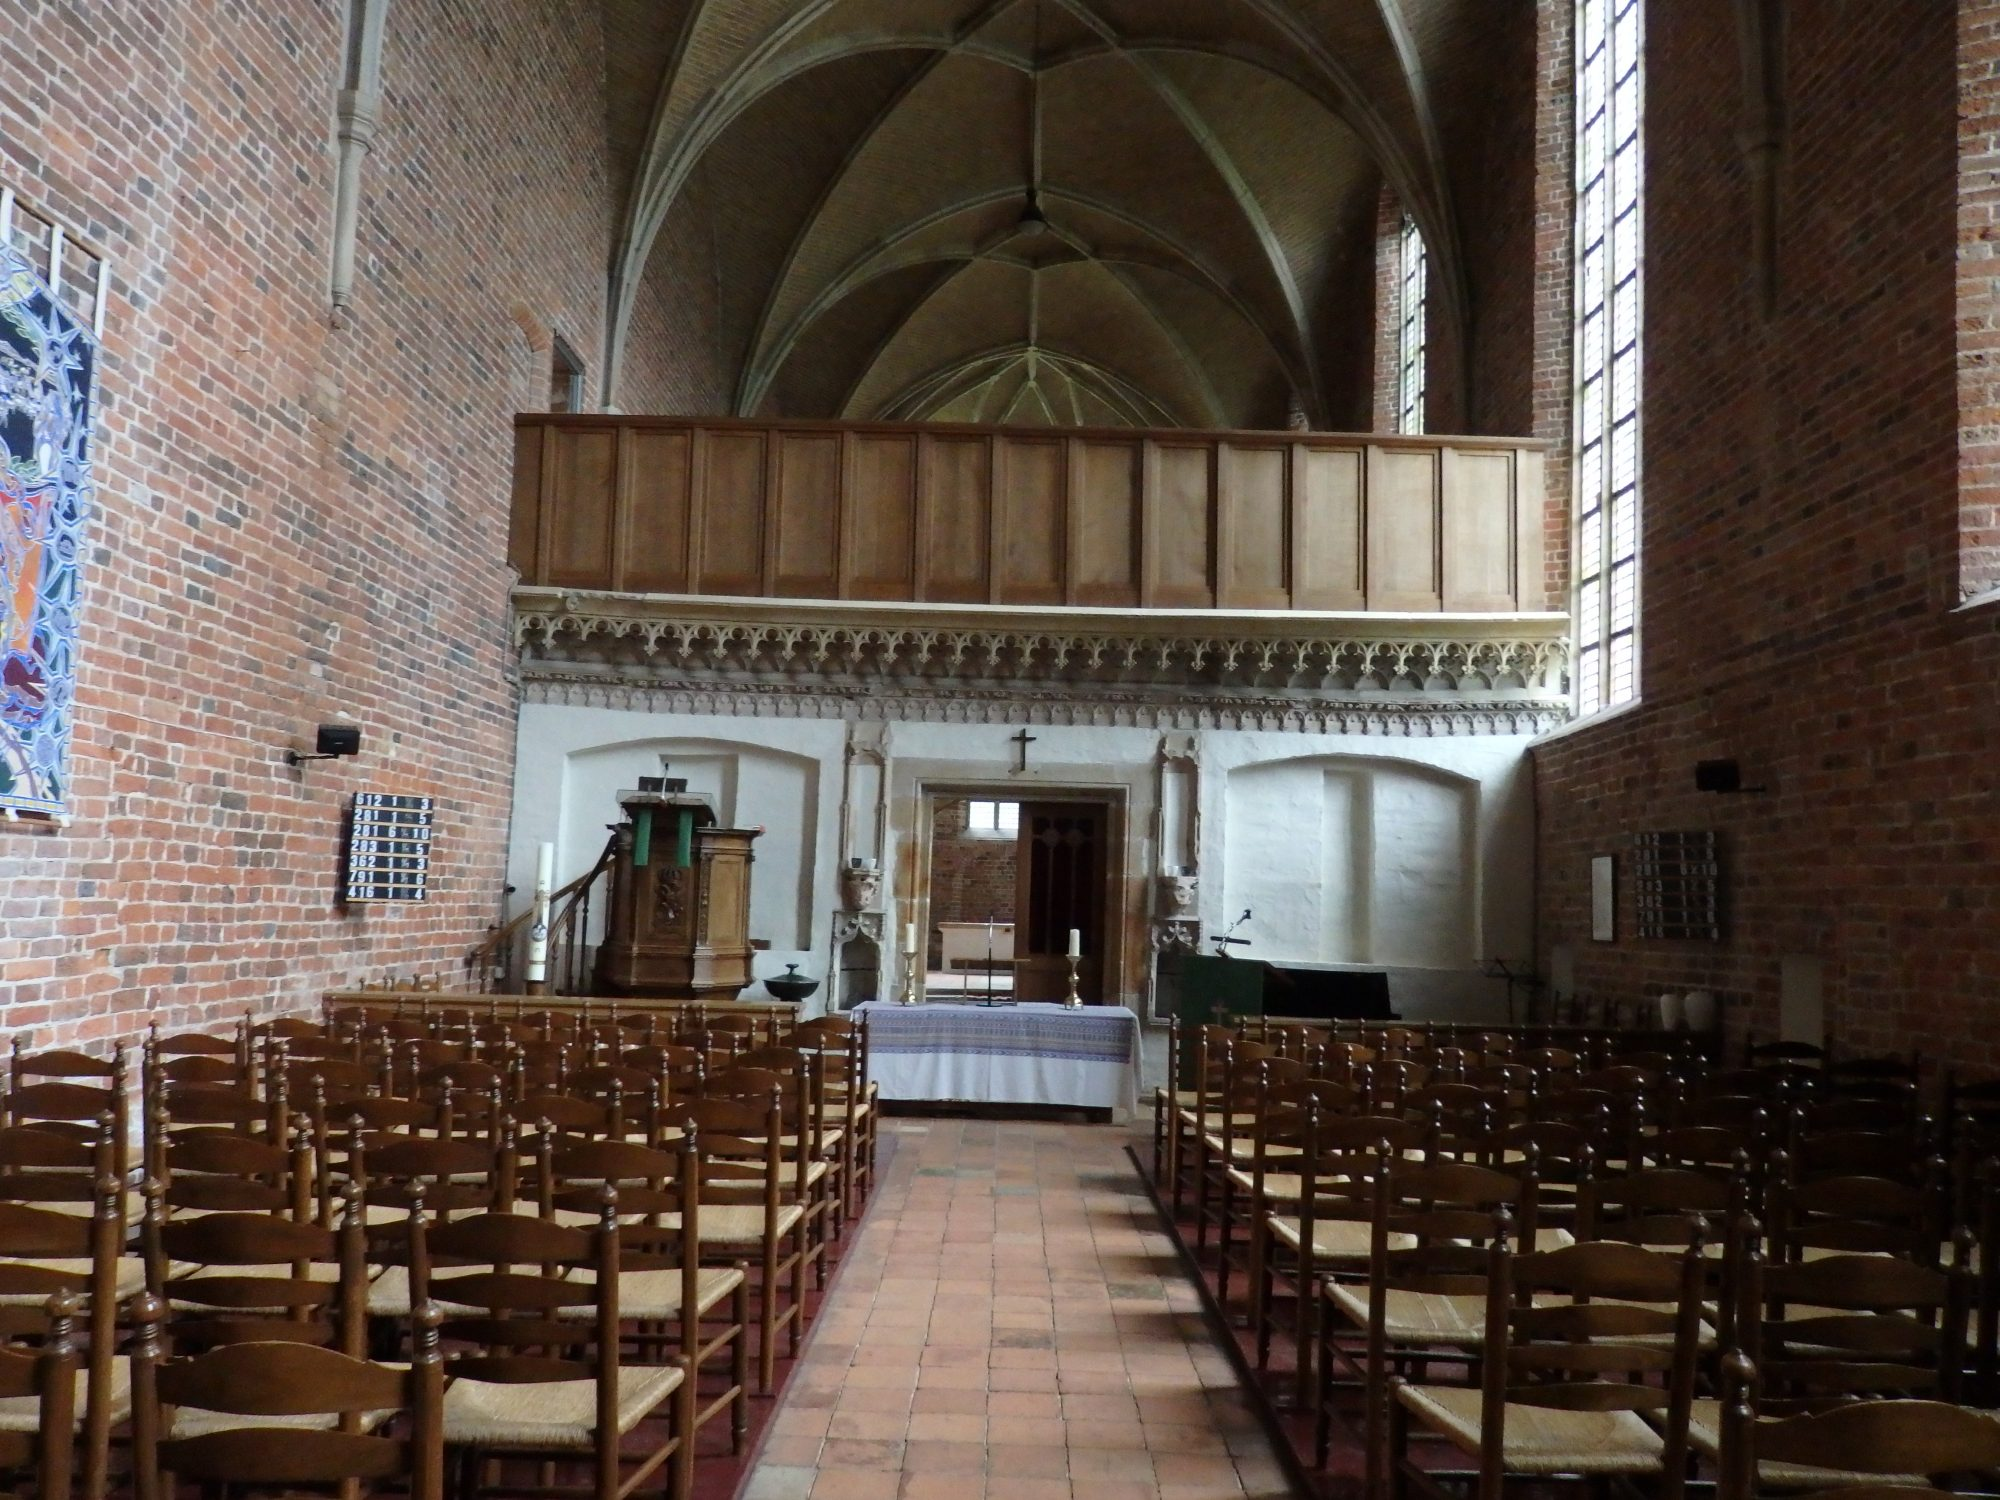 The villagers' side of the church, looking toward their altar and the barrier between them and the monks. Ter Apel, the Netherlands